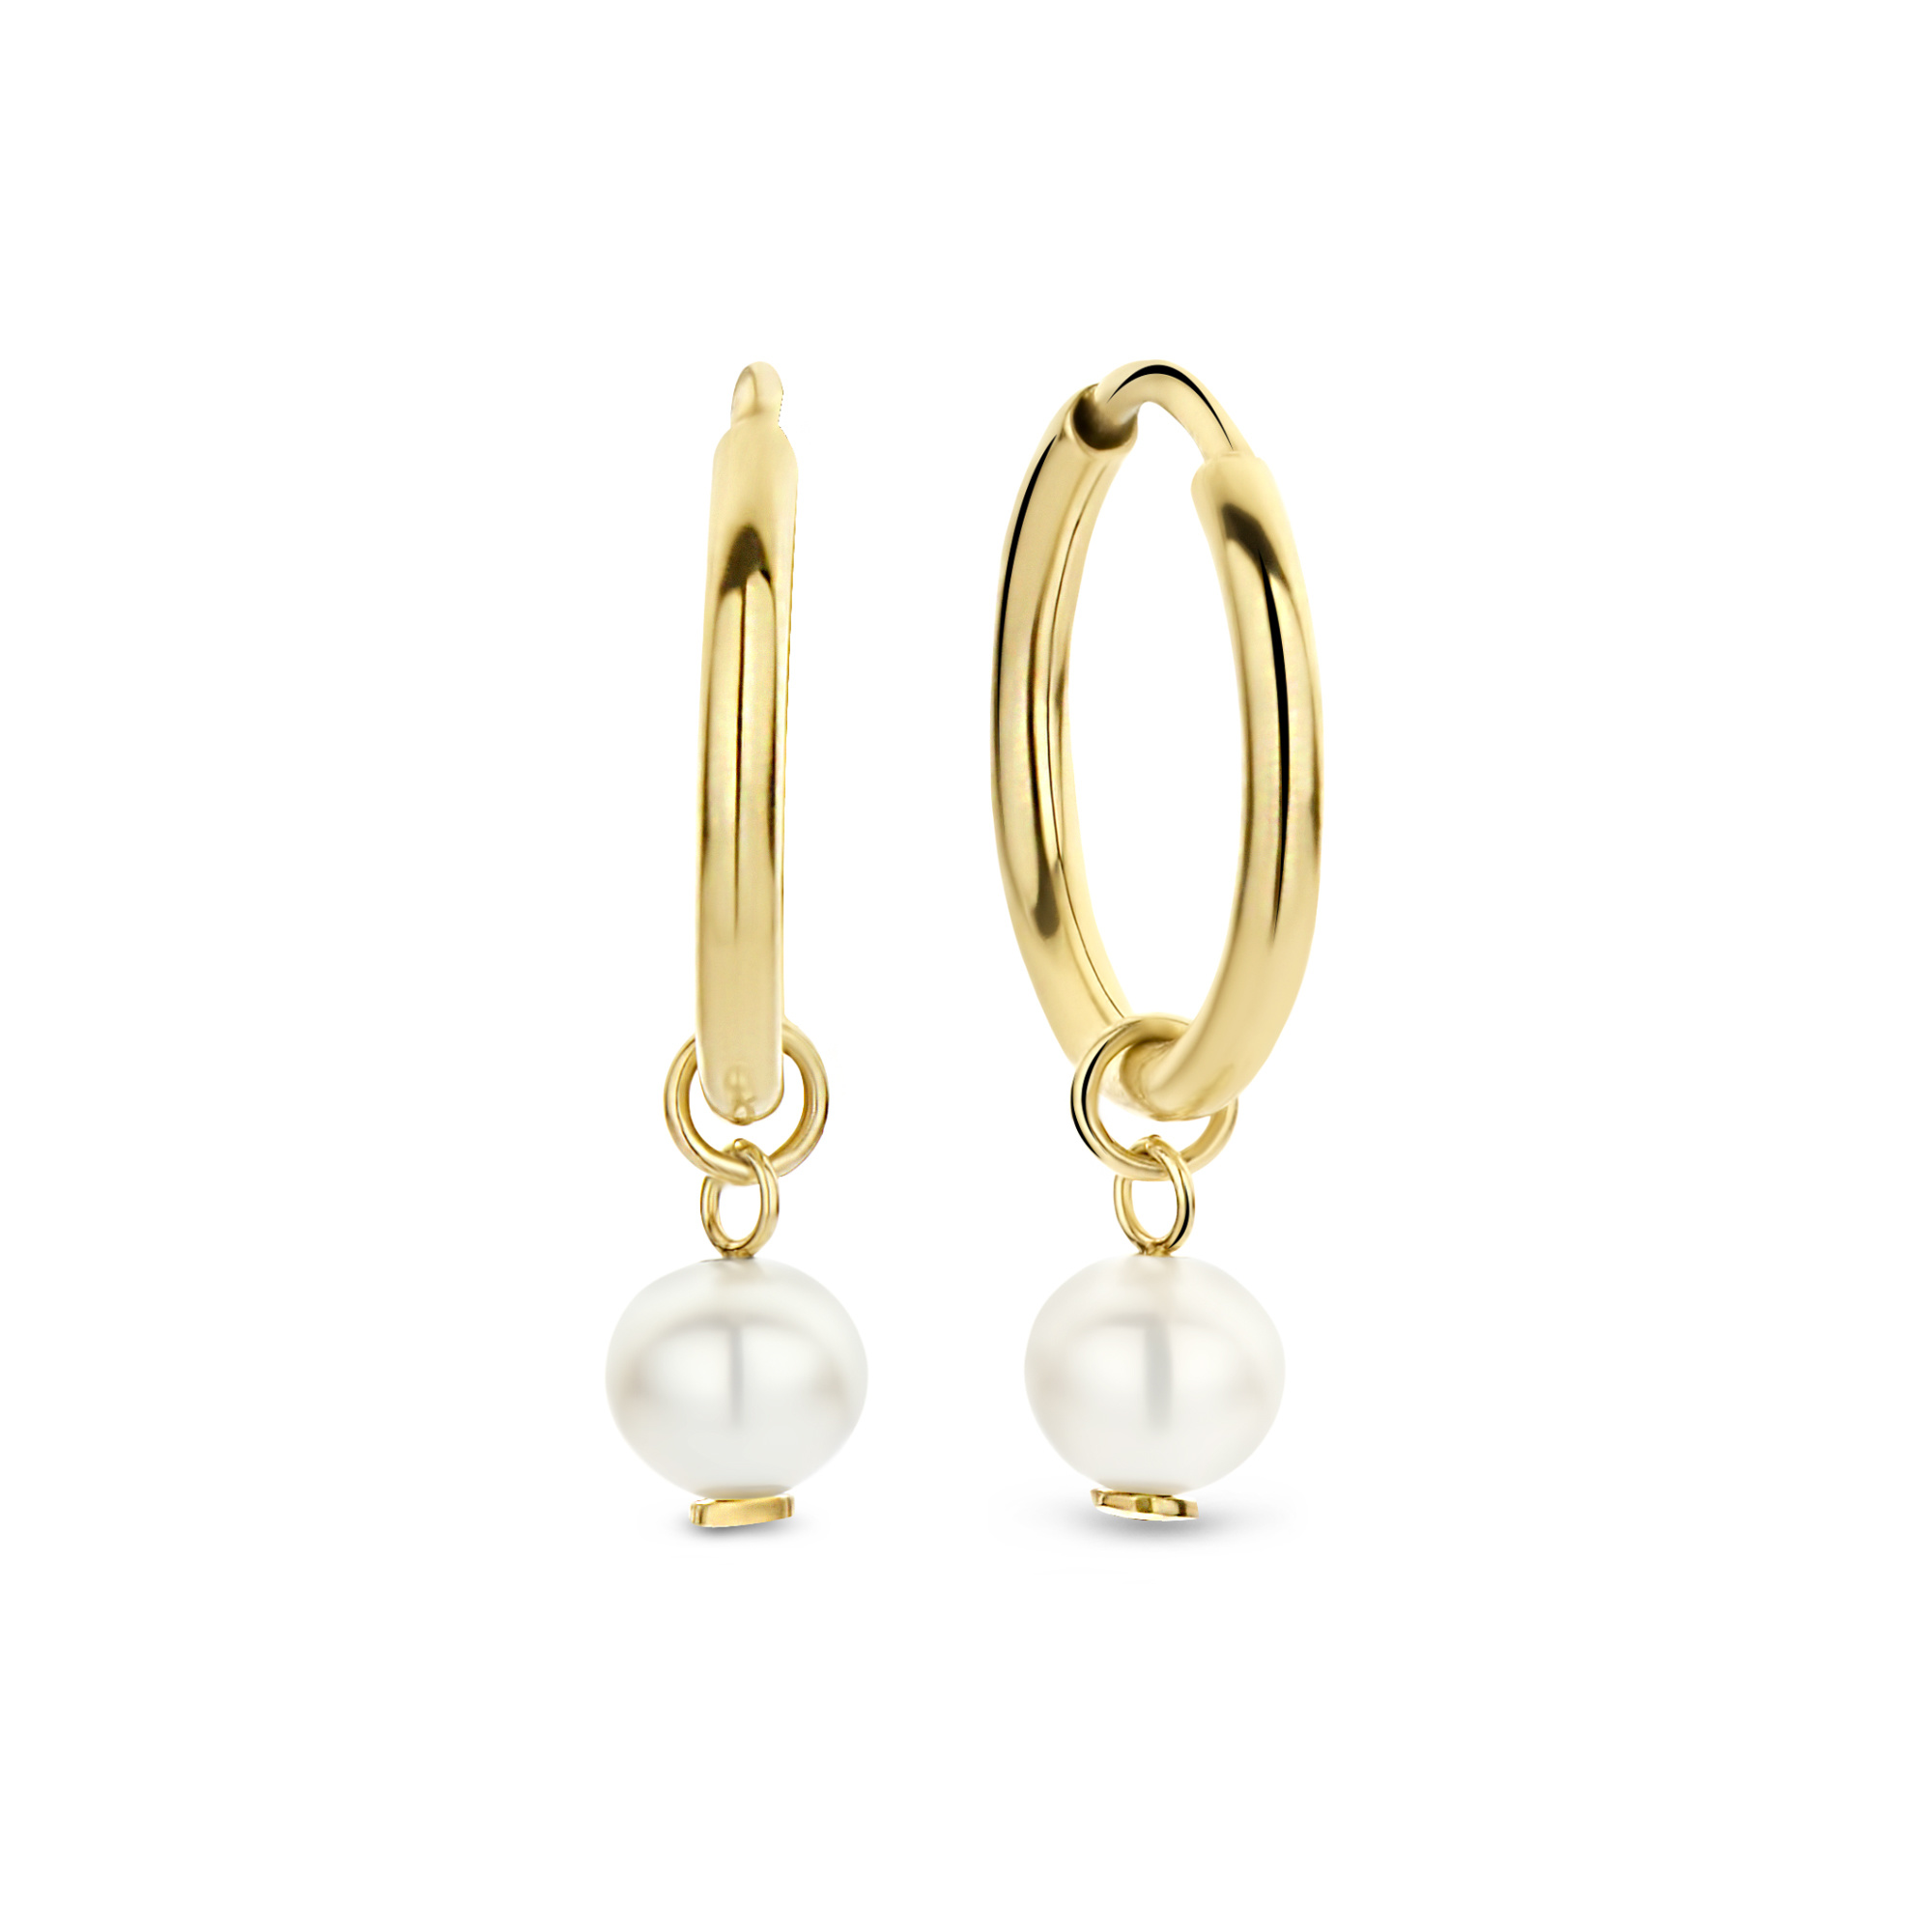 Isabel Bernard Belleville Luna 14 karat gold hoop earrings with freshwater pearl